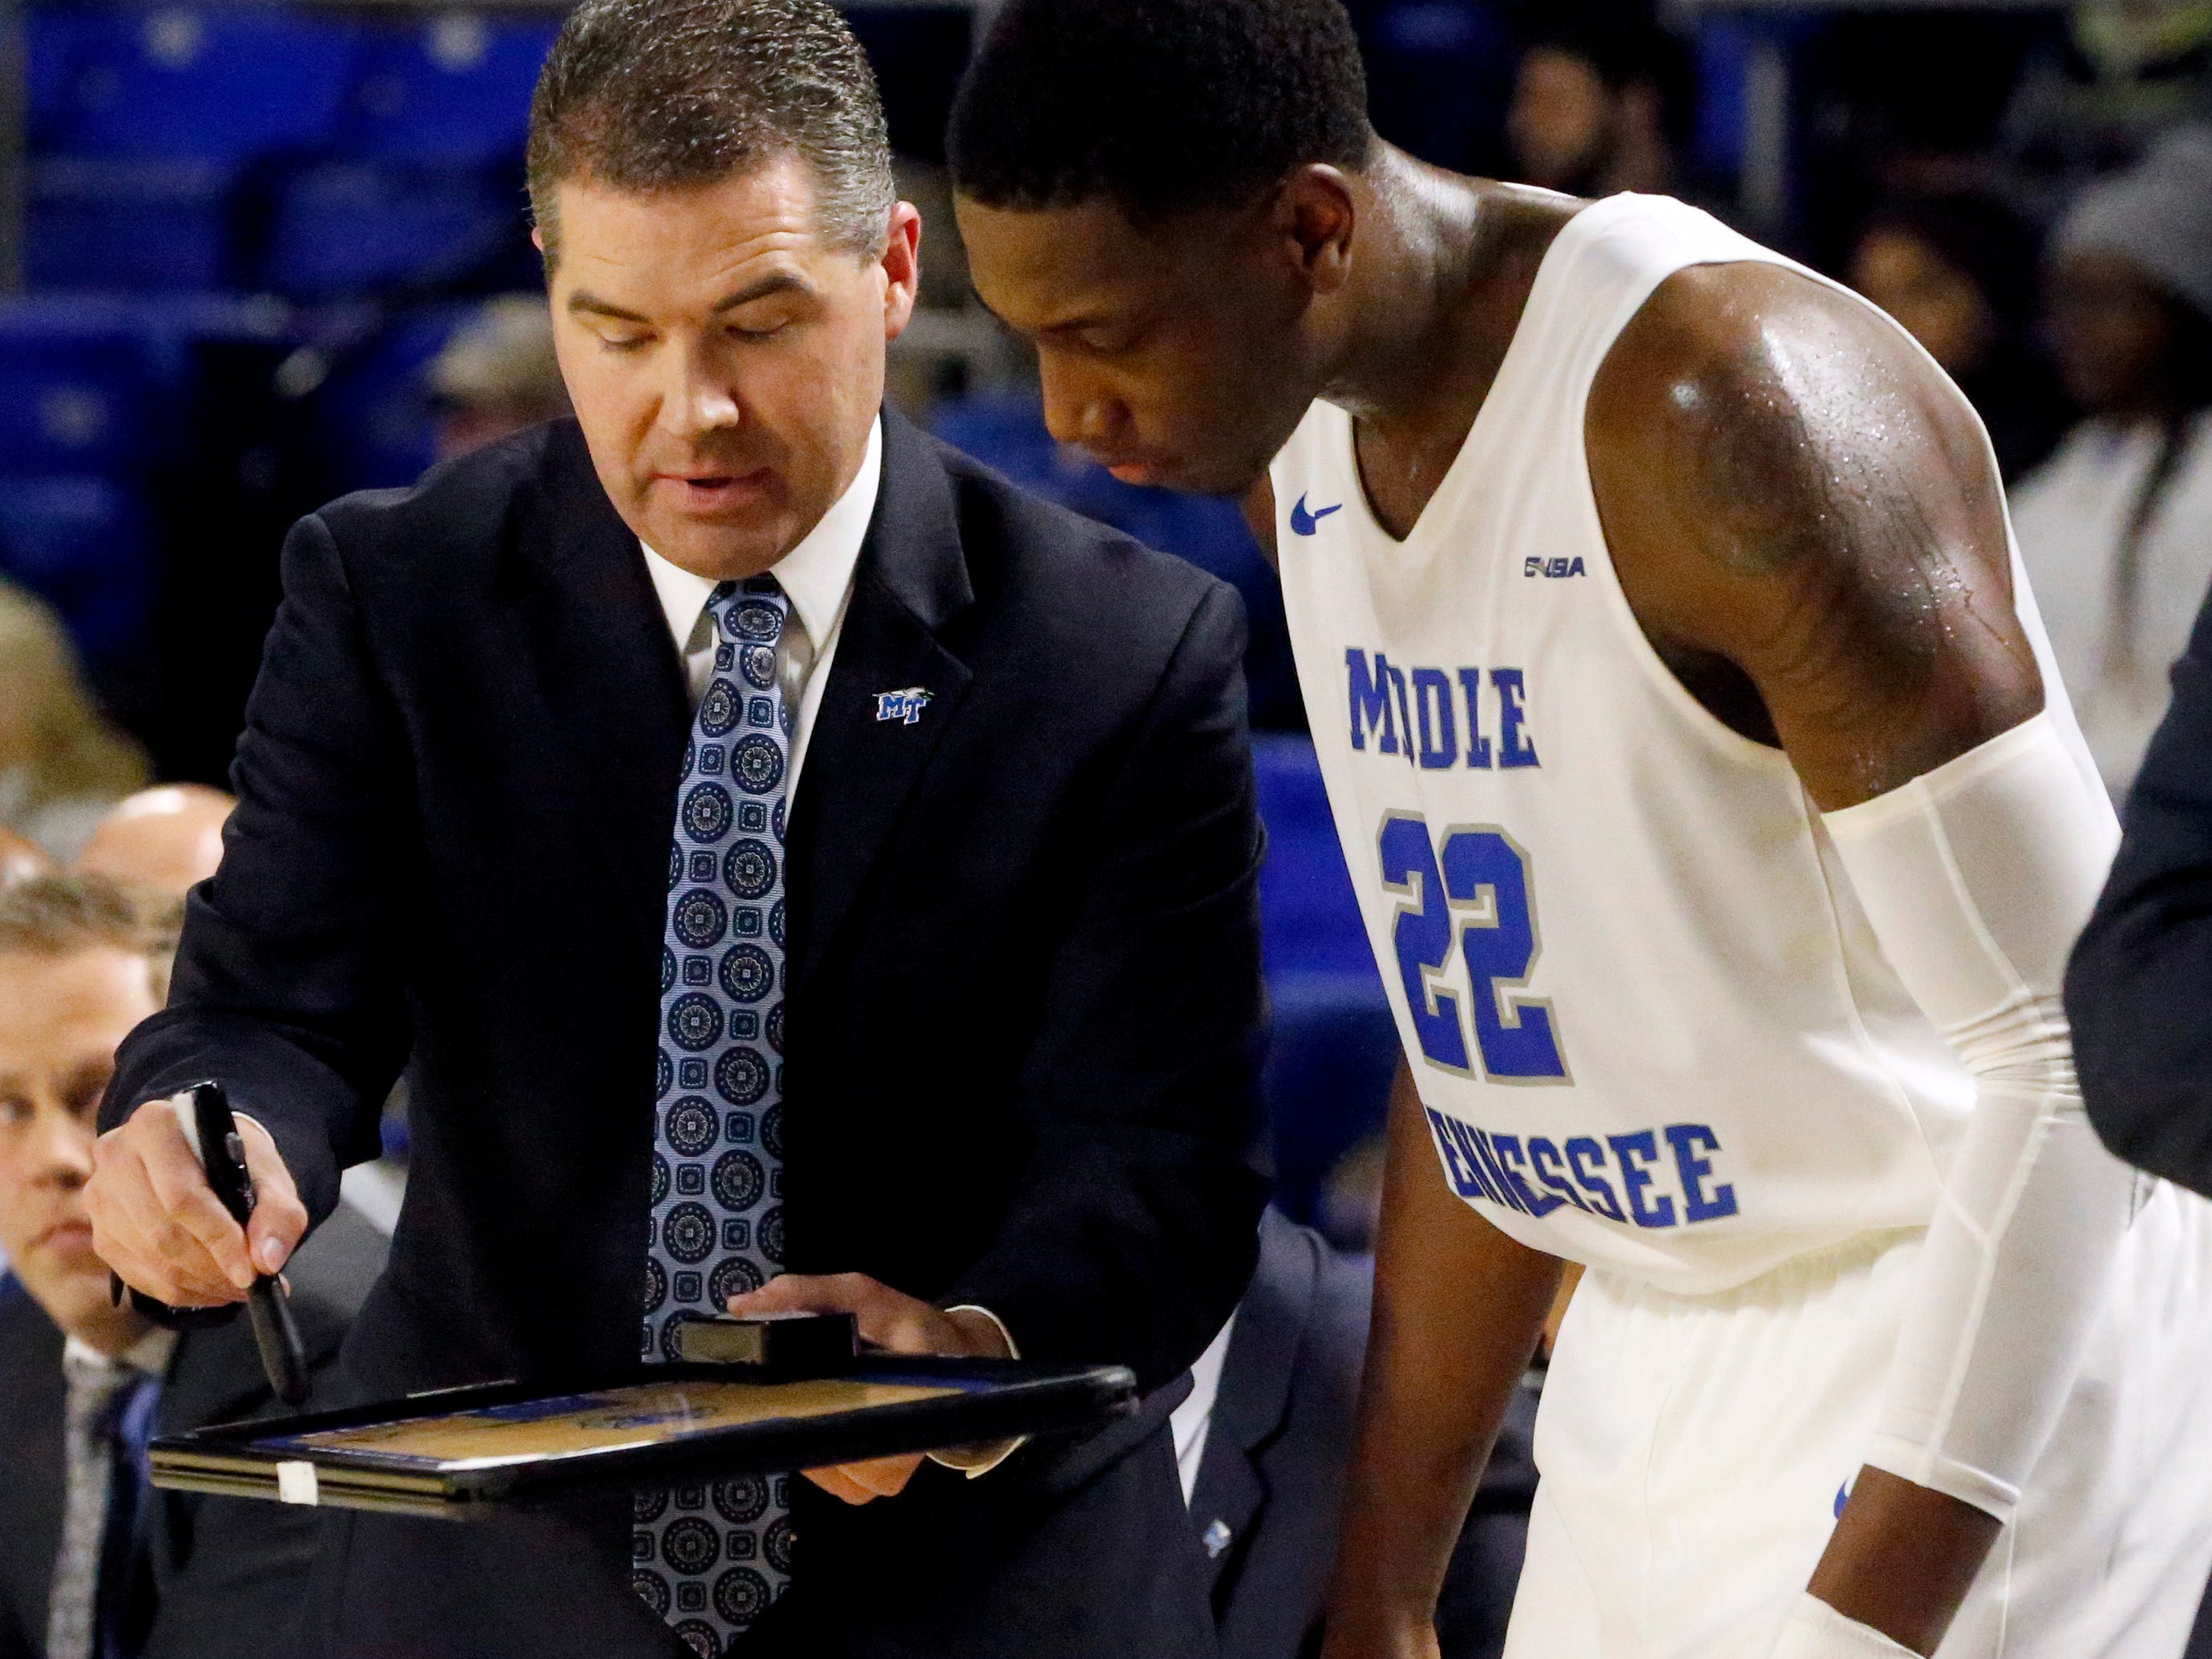 MTSU head coach Nick McDevitt on the sidelines with MTSU forward Reggie Scurry (22) during a time-out in the game on Wednesday Jan. 30, 2019.